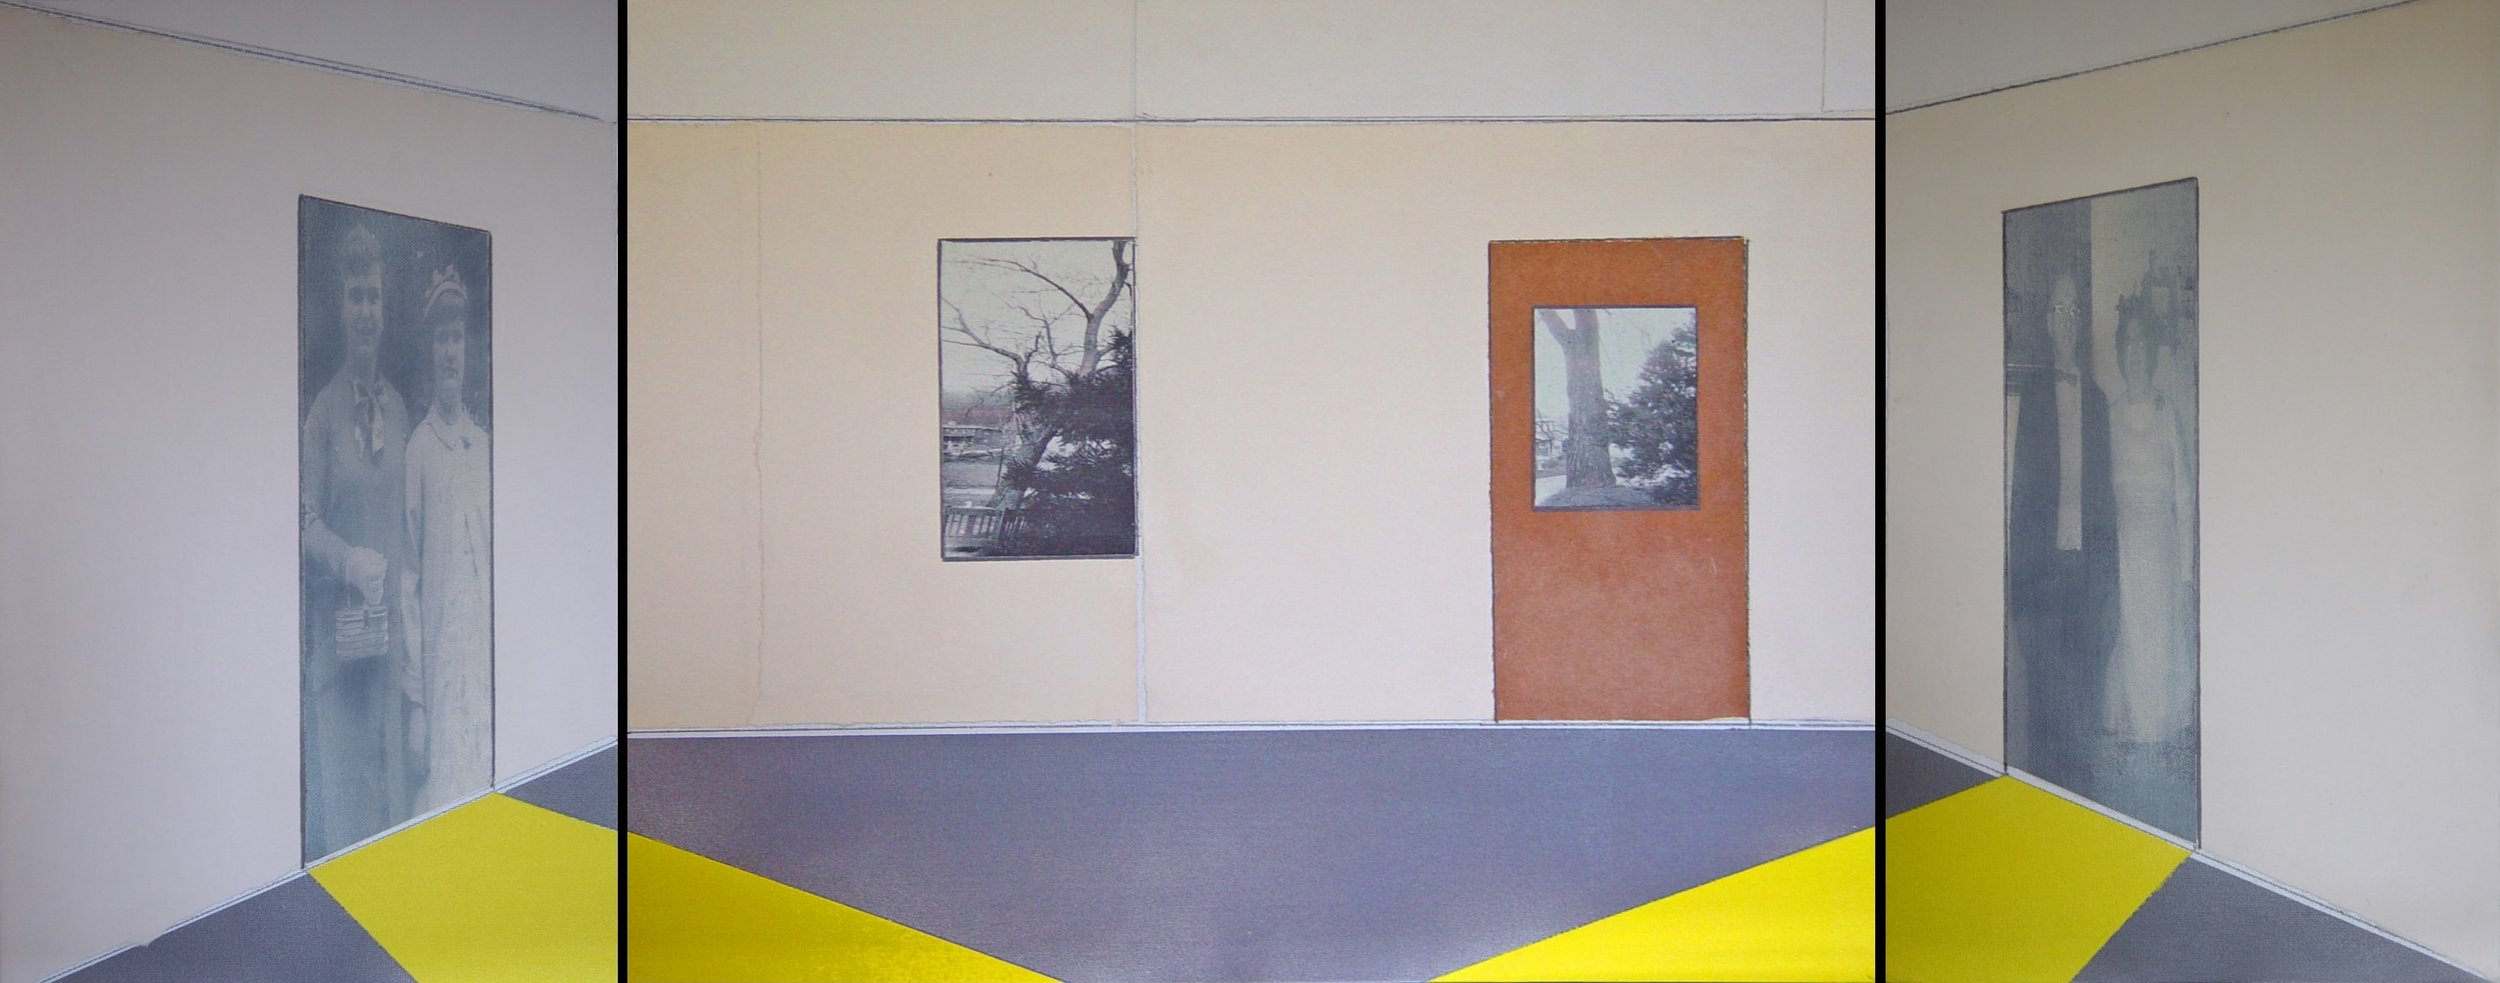 1601 Pine Hollow Road, Triptych #1, 2017, Mixed Media; aerosol, acrylic, paper, manipulated scanned photograph, graphite, 16 x 30 inches, $500